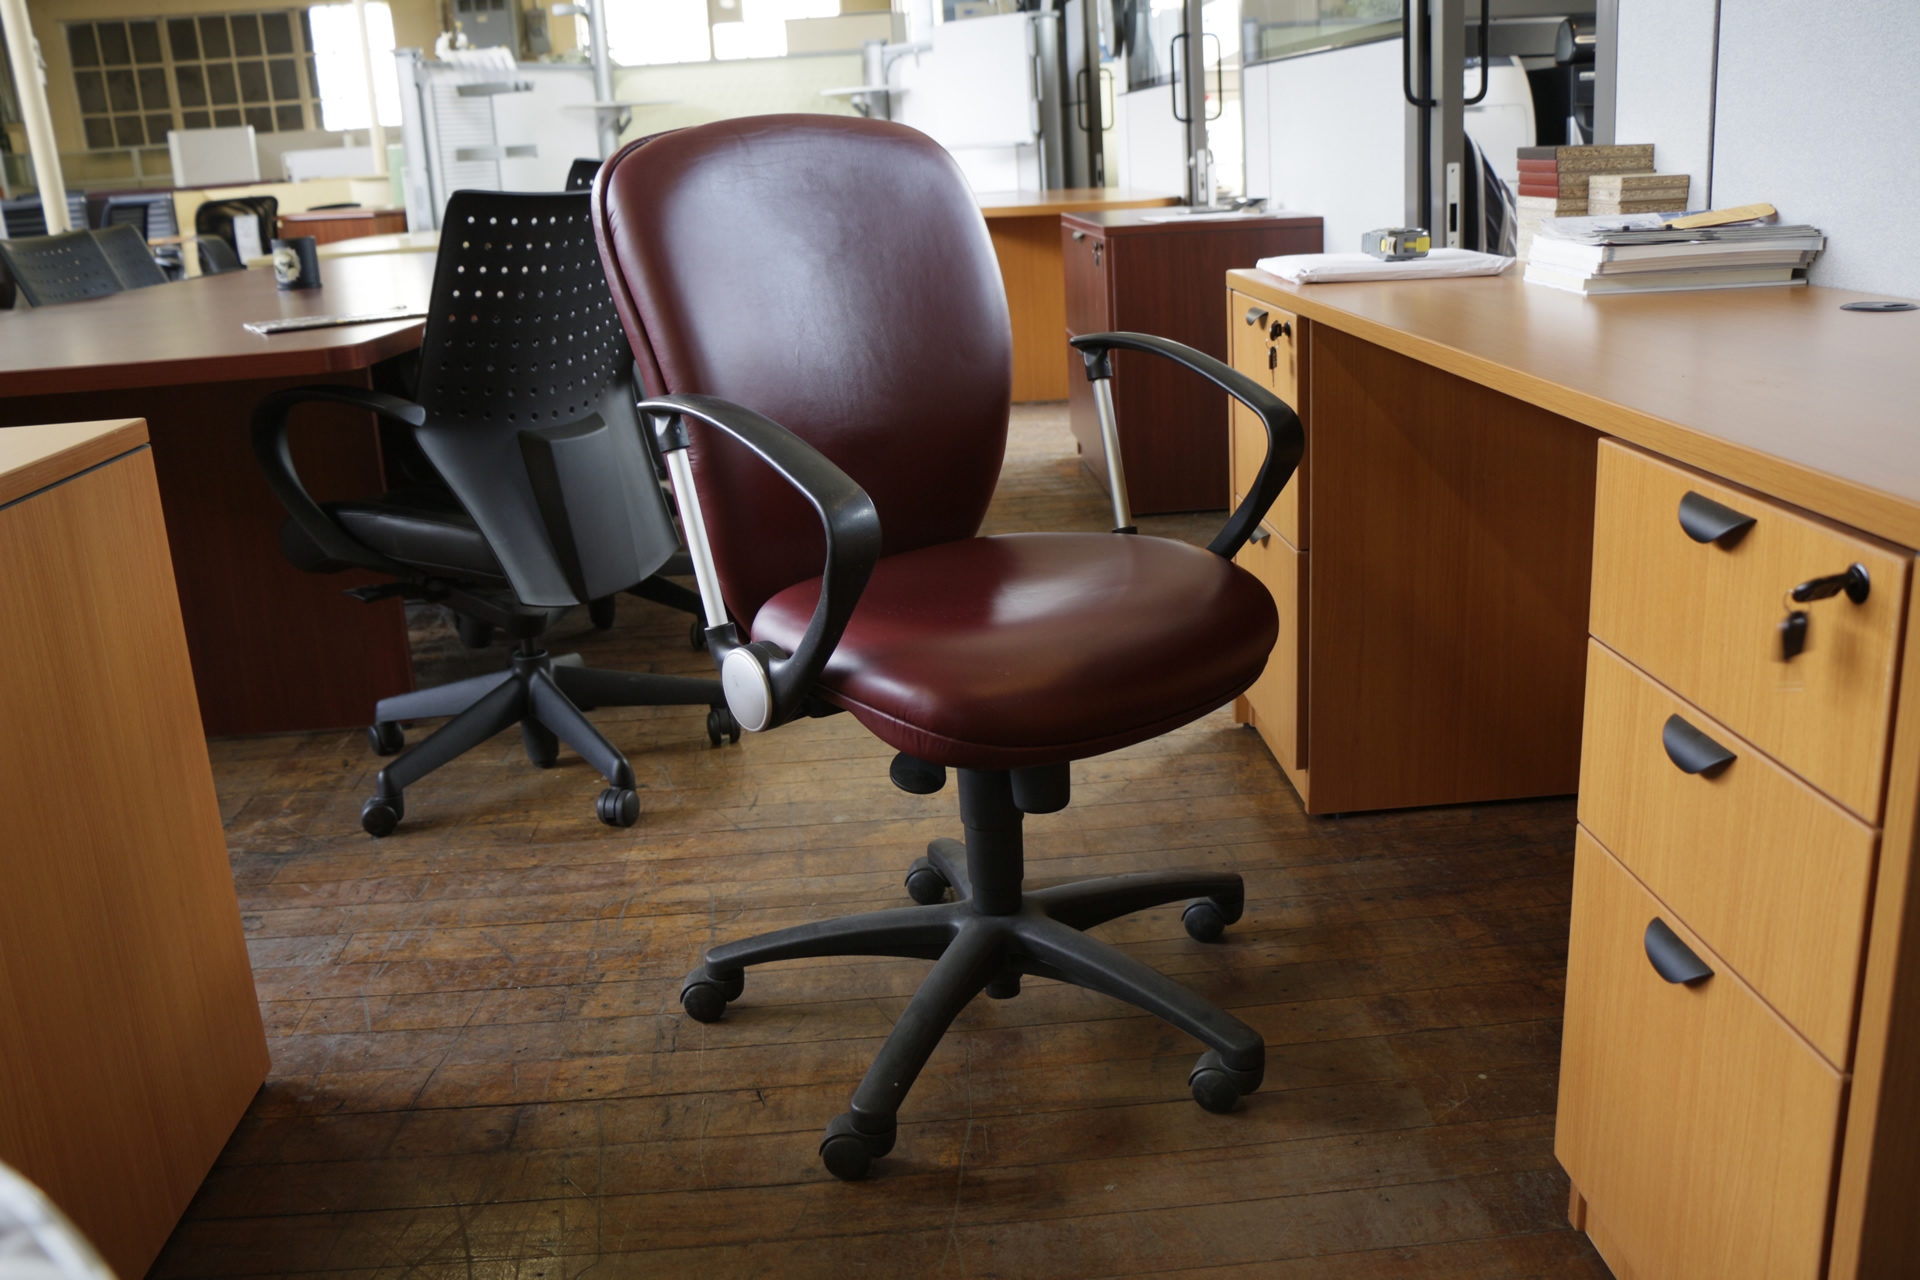 peartreeofficefurniture_peartreeofficefurniture_mg_3280.jpg